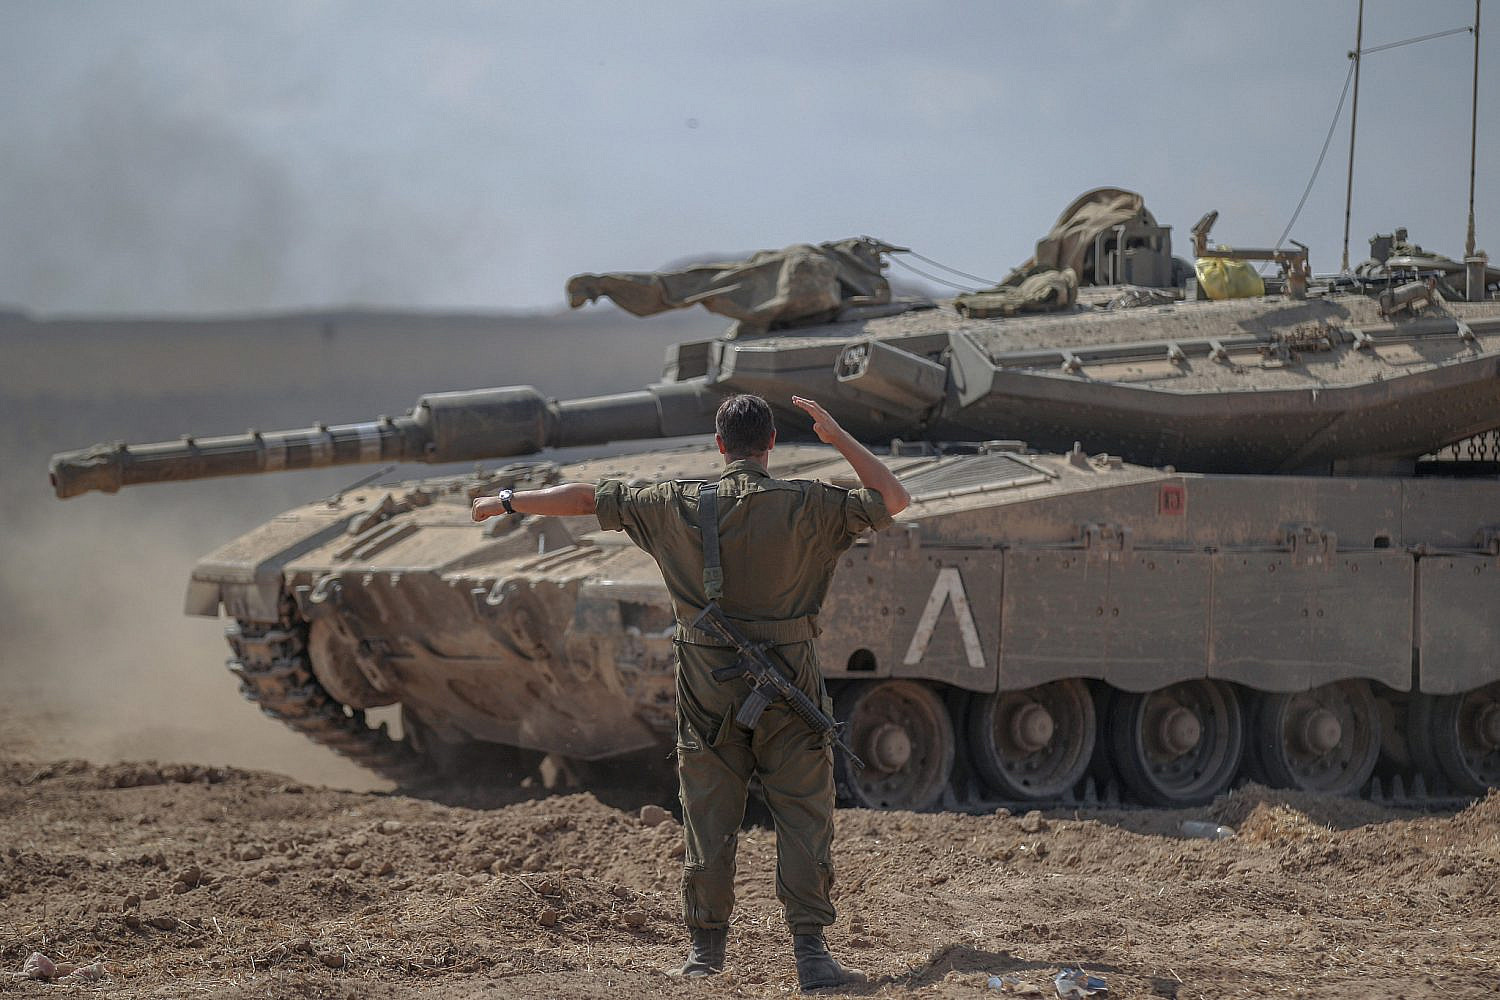 An Israeli soldier directs a Merakva tank after pulling back from the Gaza Strip, Aug. 3, 2014. (Flash90)